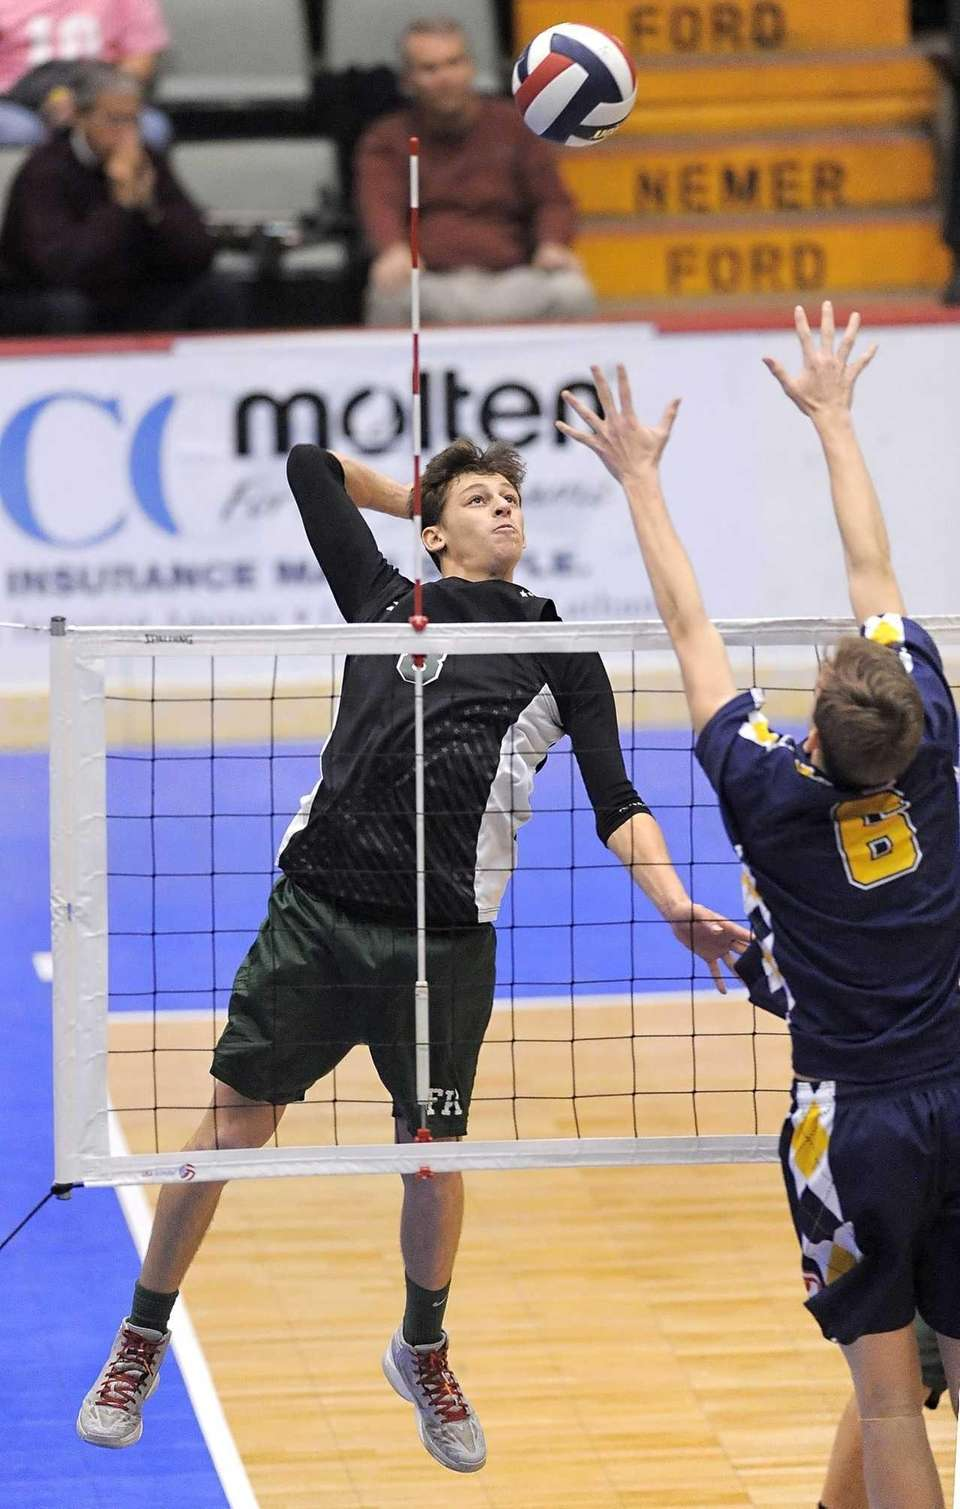 Bellmore JFK's Justin Feigeles hits against Victor's Collin